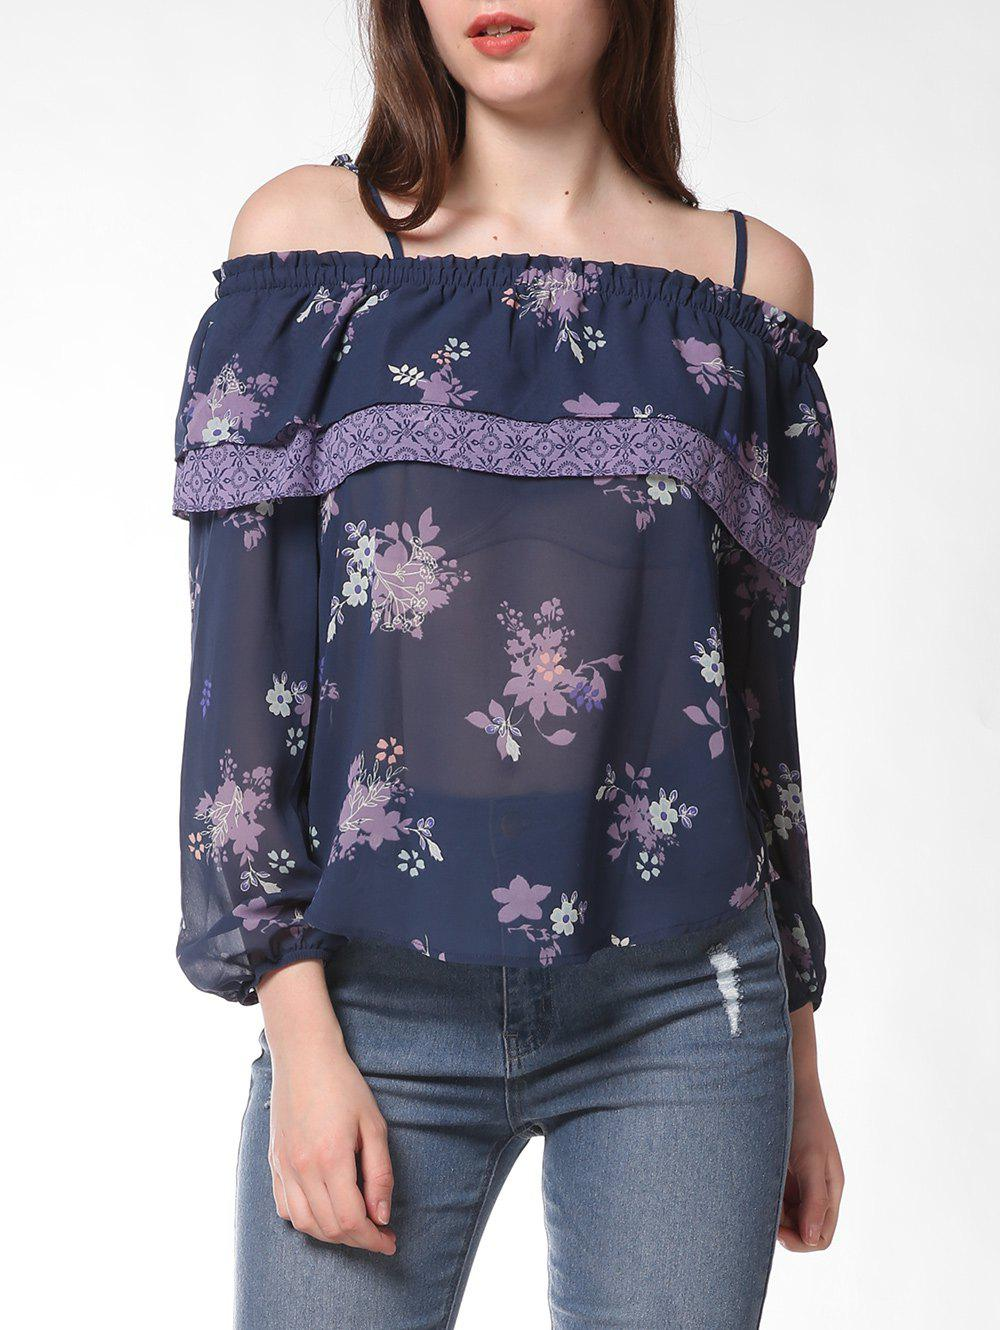 FRENCH BAZAAR Floral Print Strap Cold Shoulder Ruffle Blouse - SLATE BLUE XL